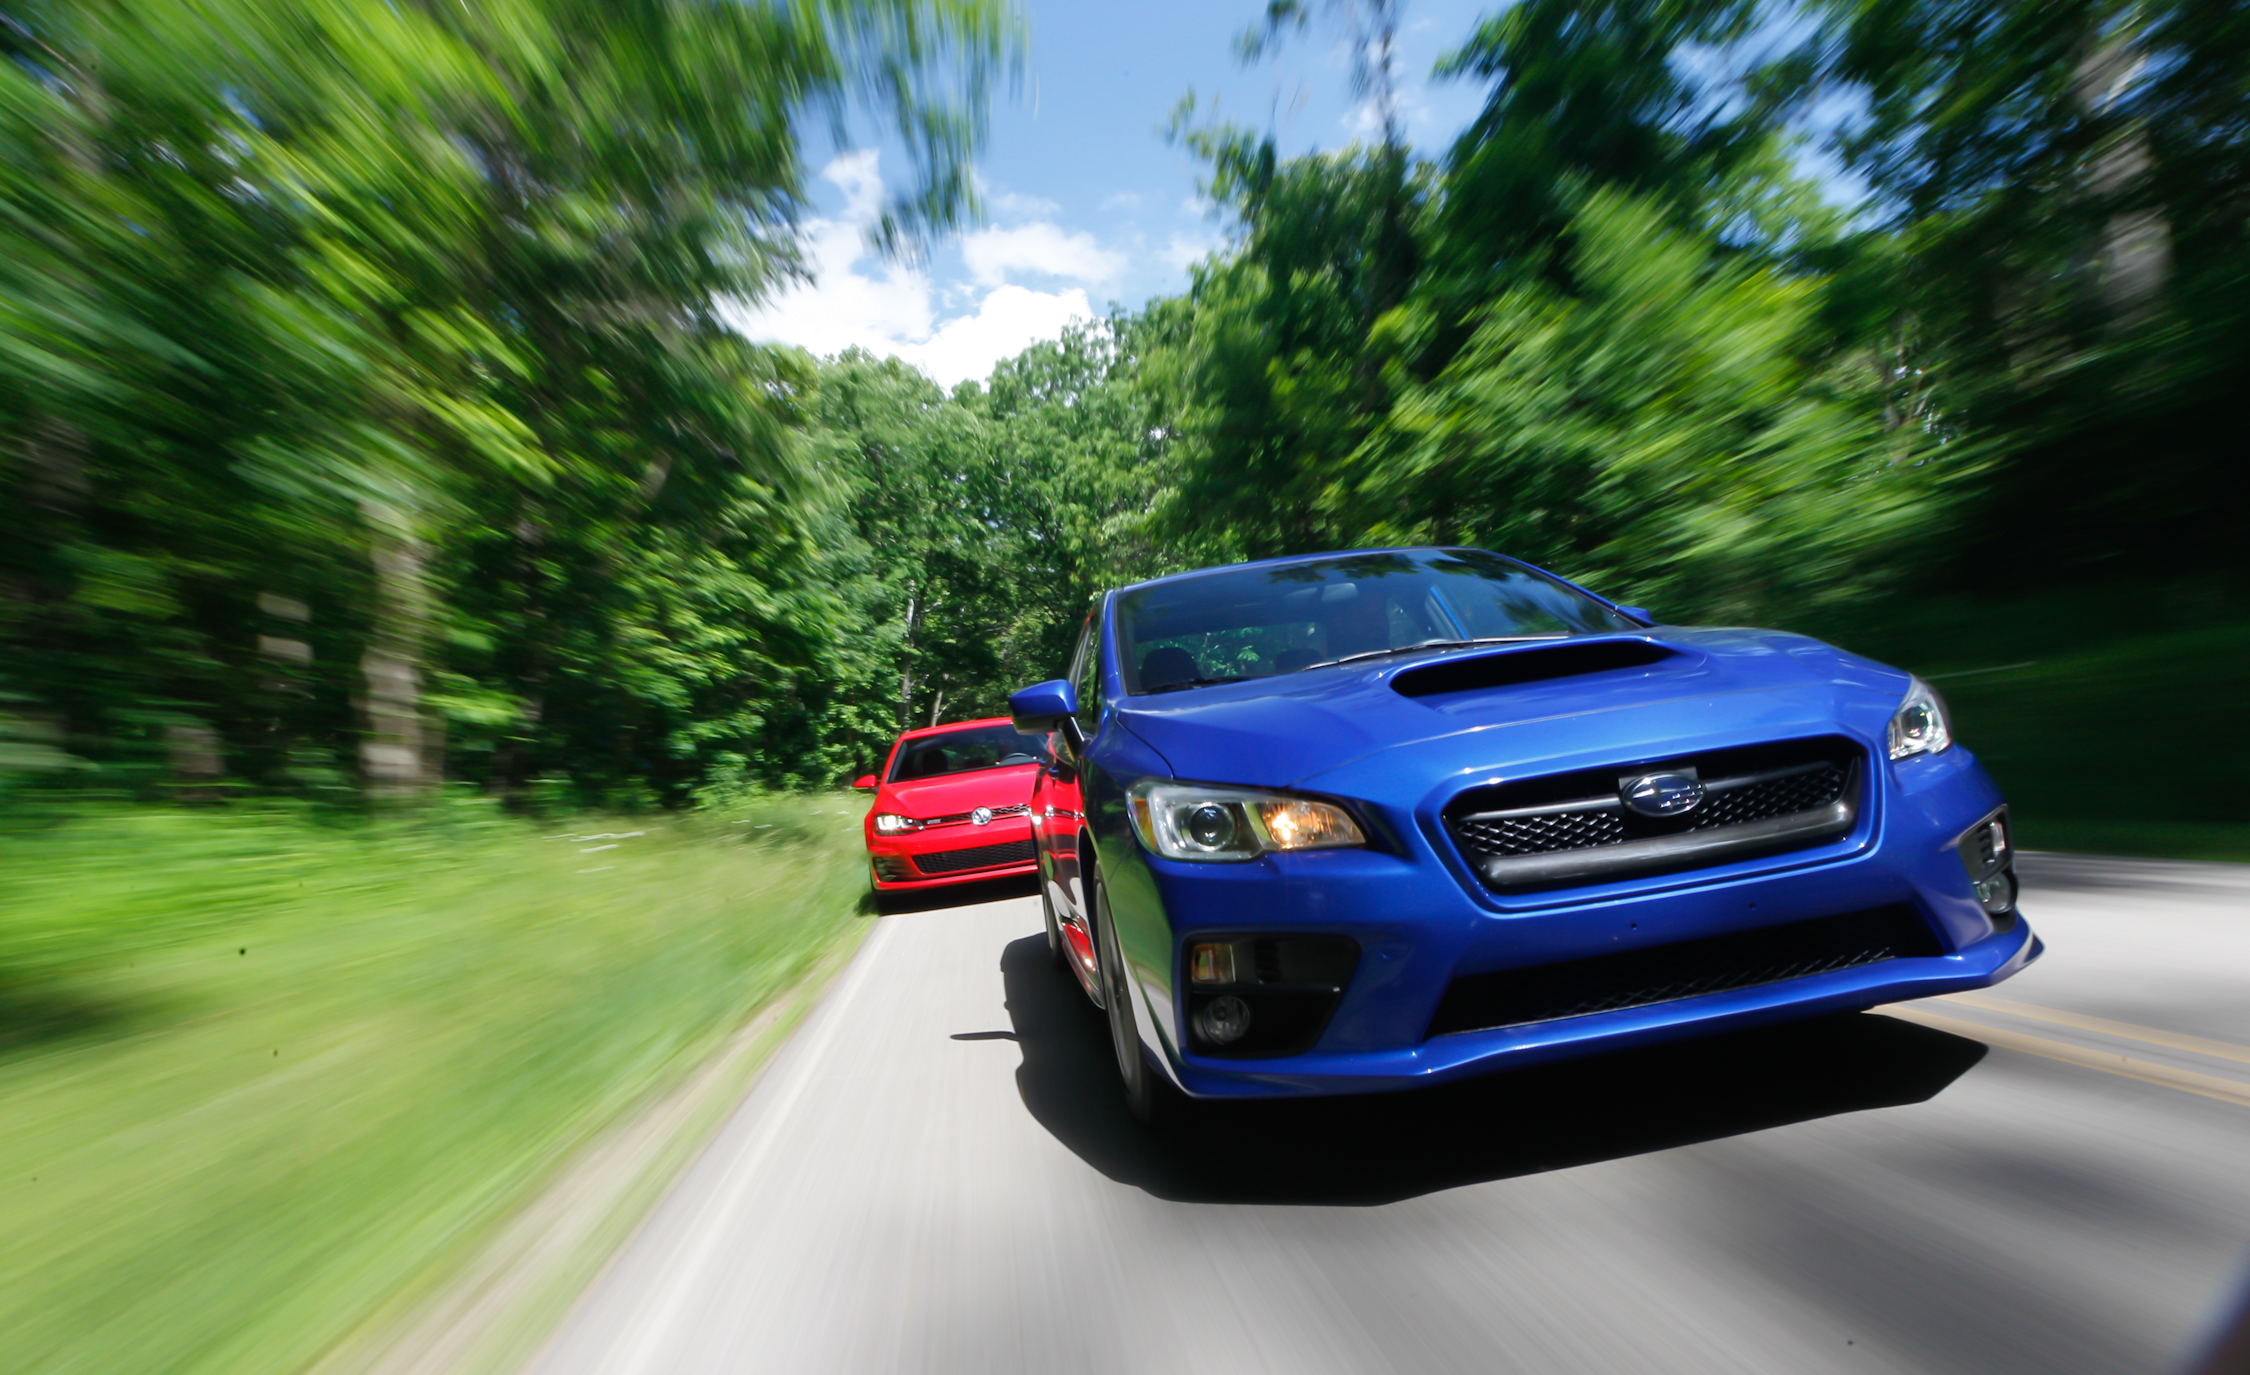 2015 Subaru WRX vs Volkswagen GTI Performance Test